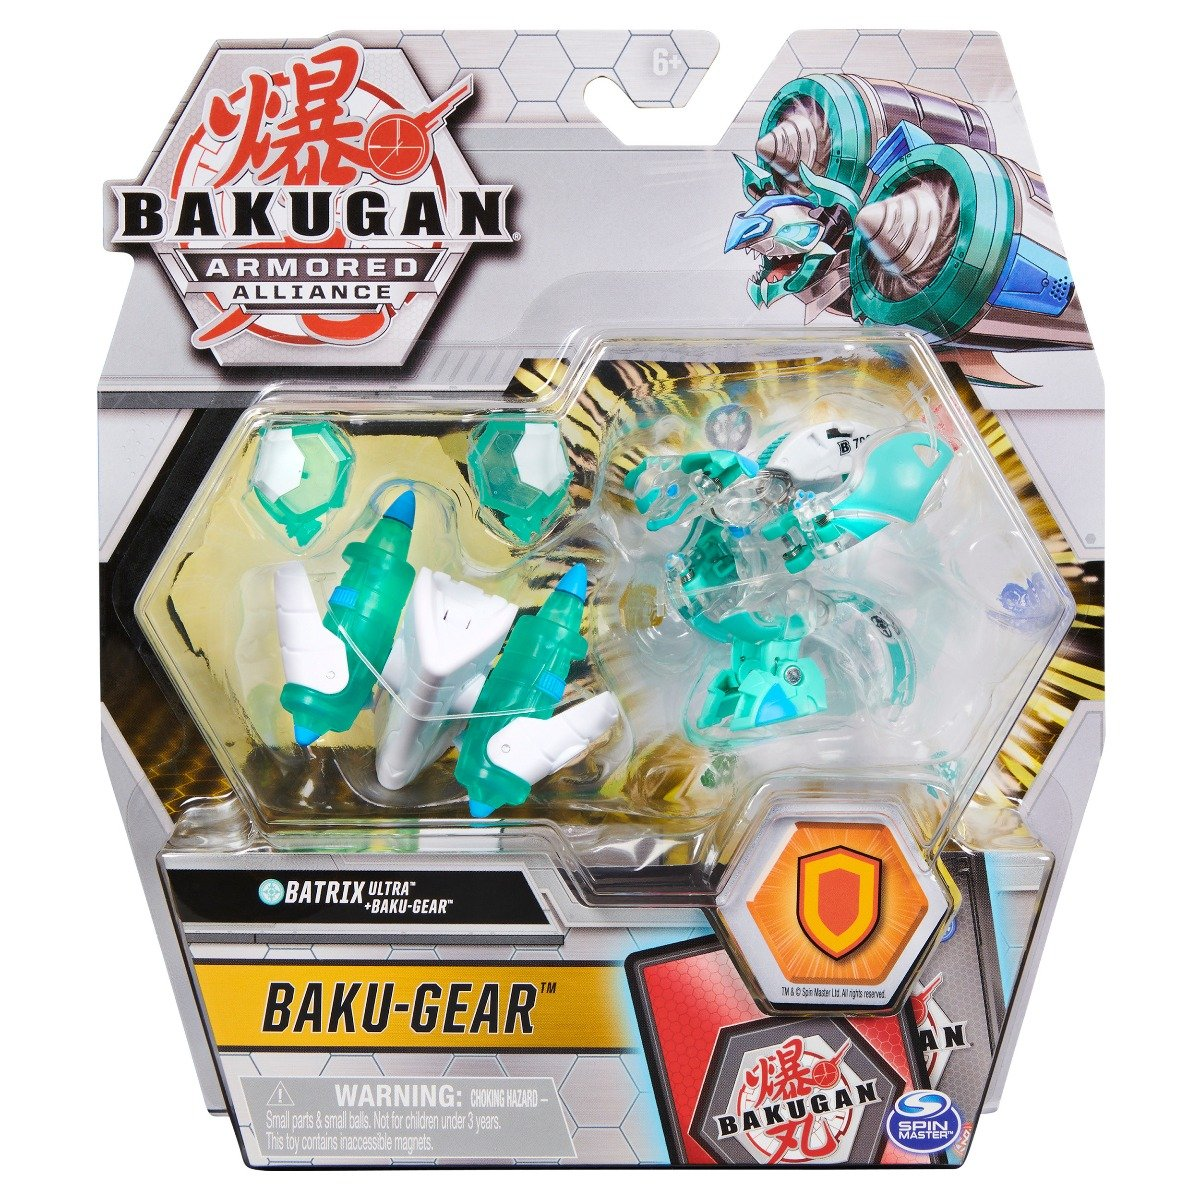 Figurina Bakugan Armored Alliance, Batrix Ultra, Baku-Gear 20124764